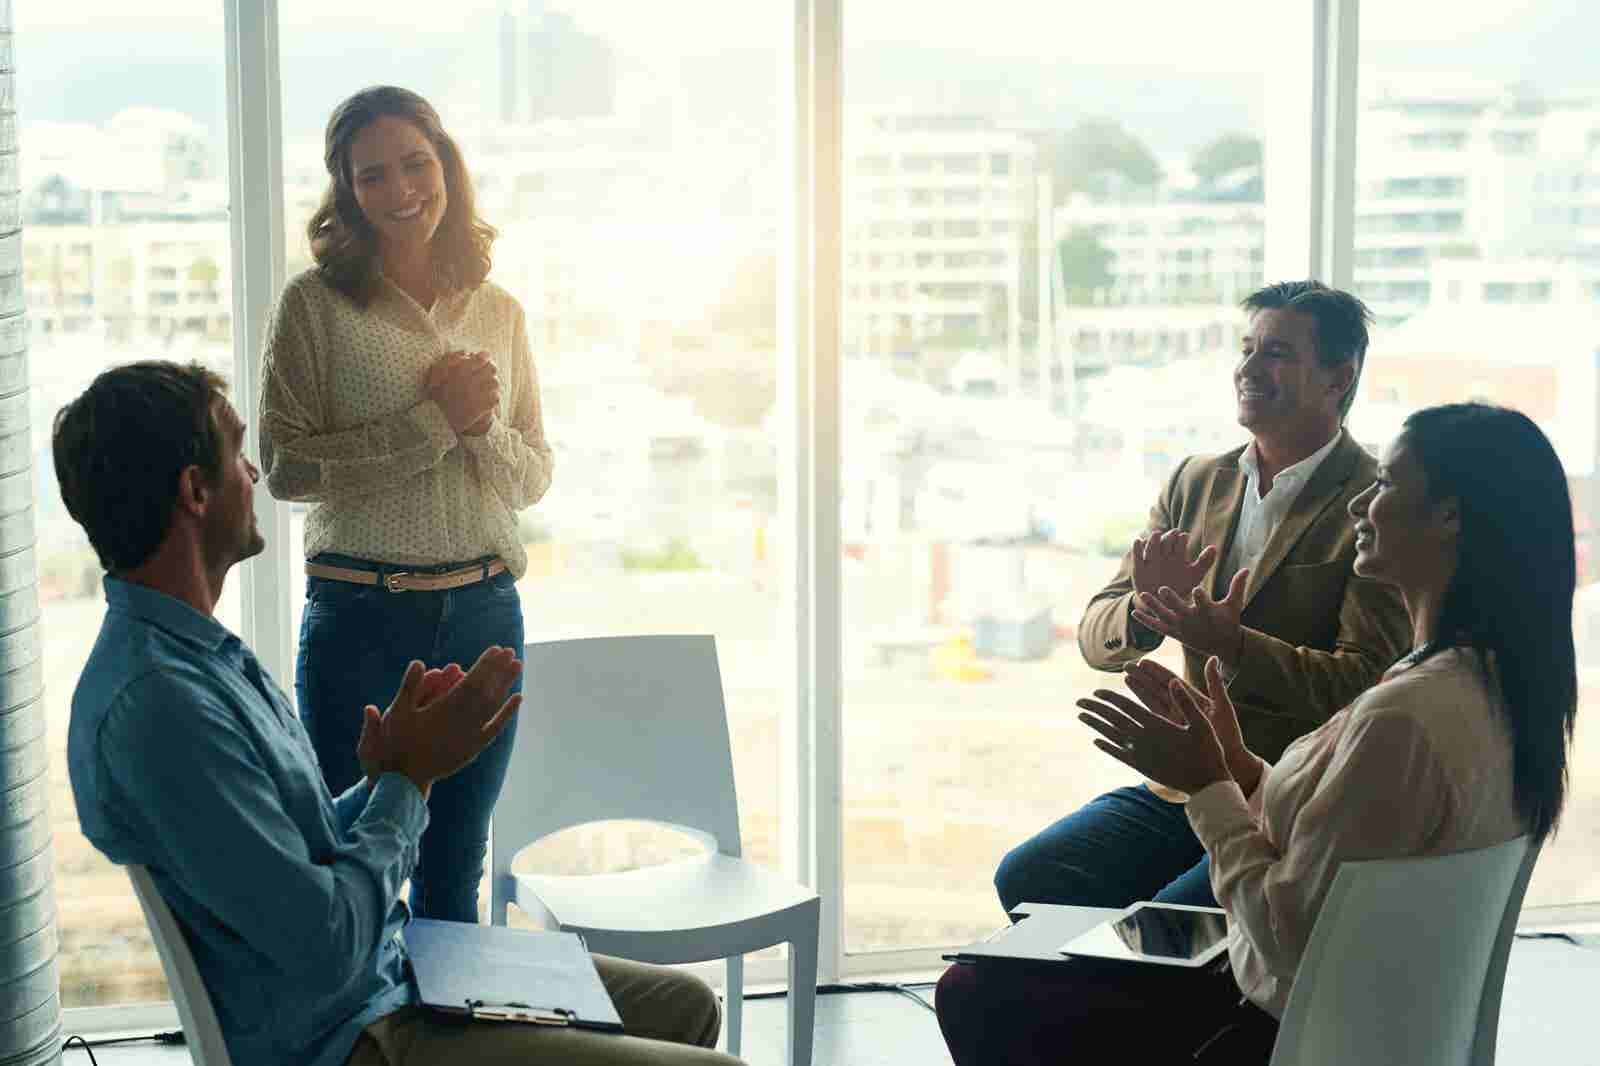 How to Find an Introvert-Friendly Work Culture